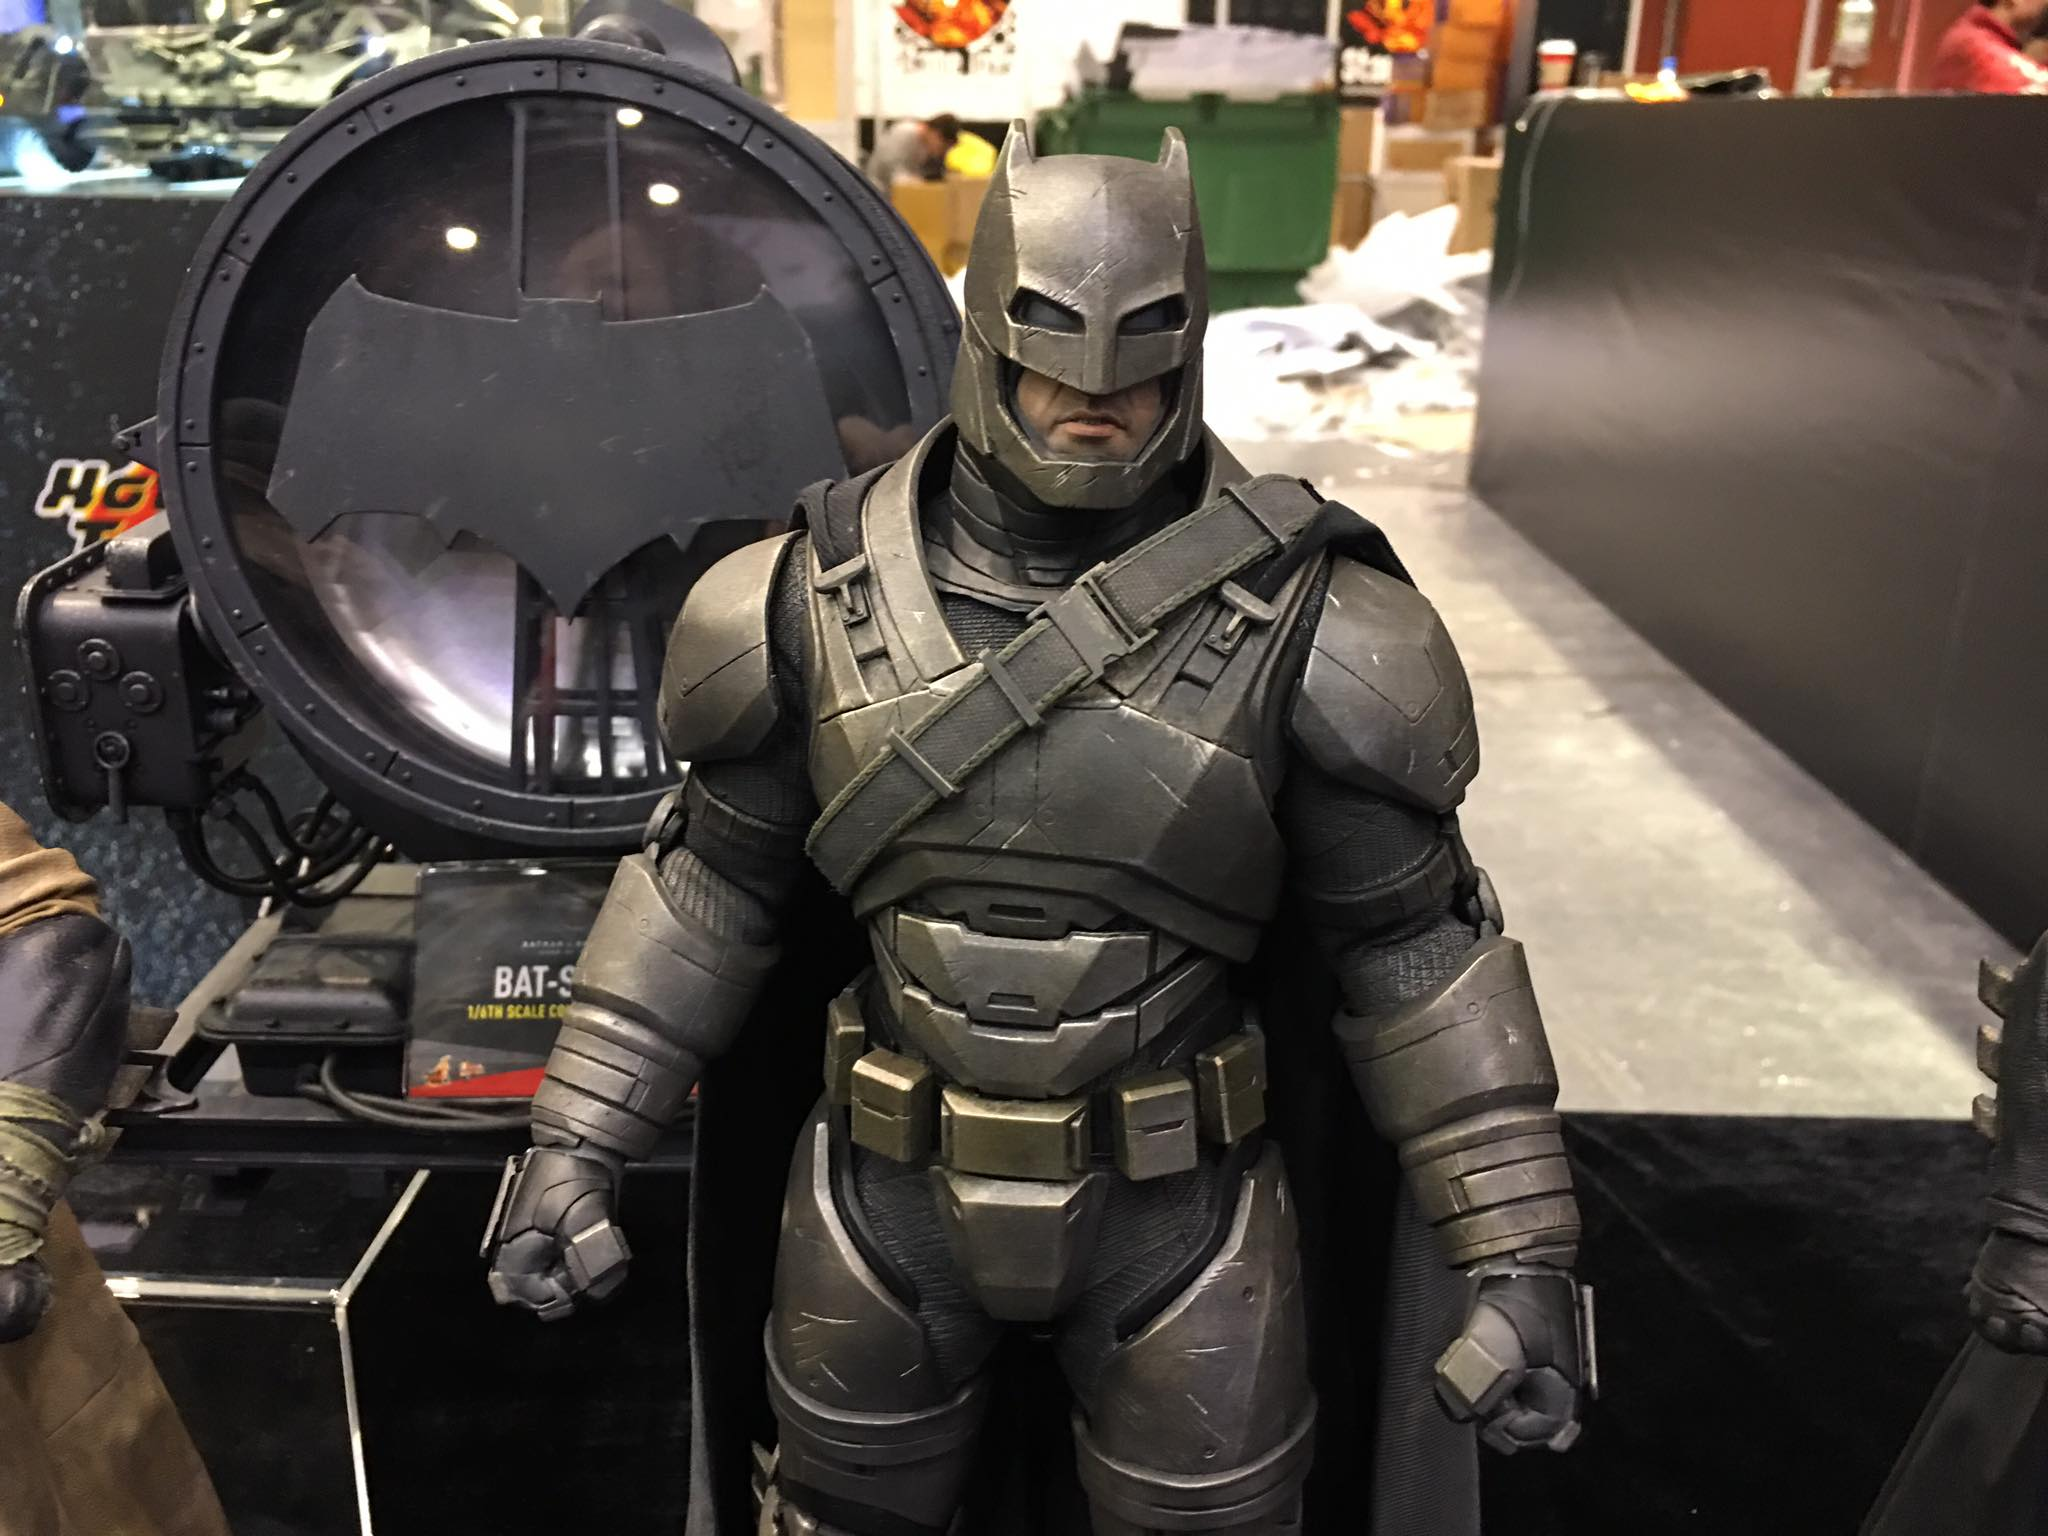 TS15-Hot-Toys-Batman-v-Superman-006.jpg